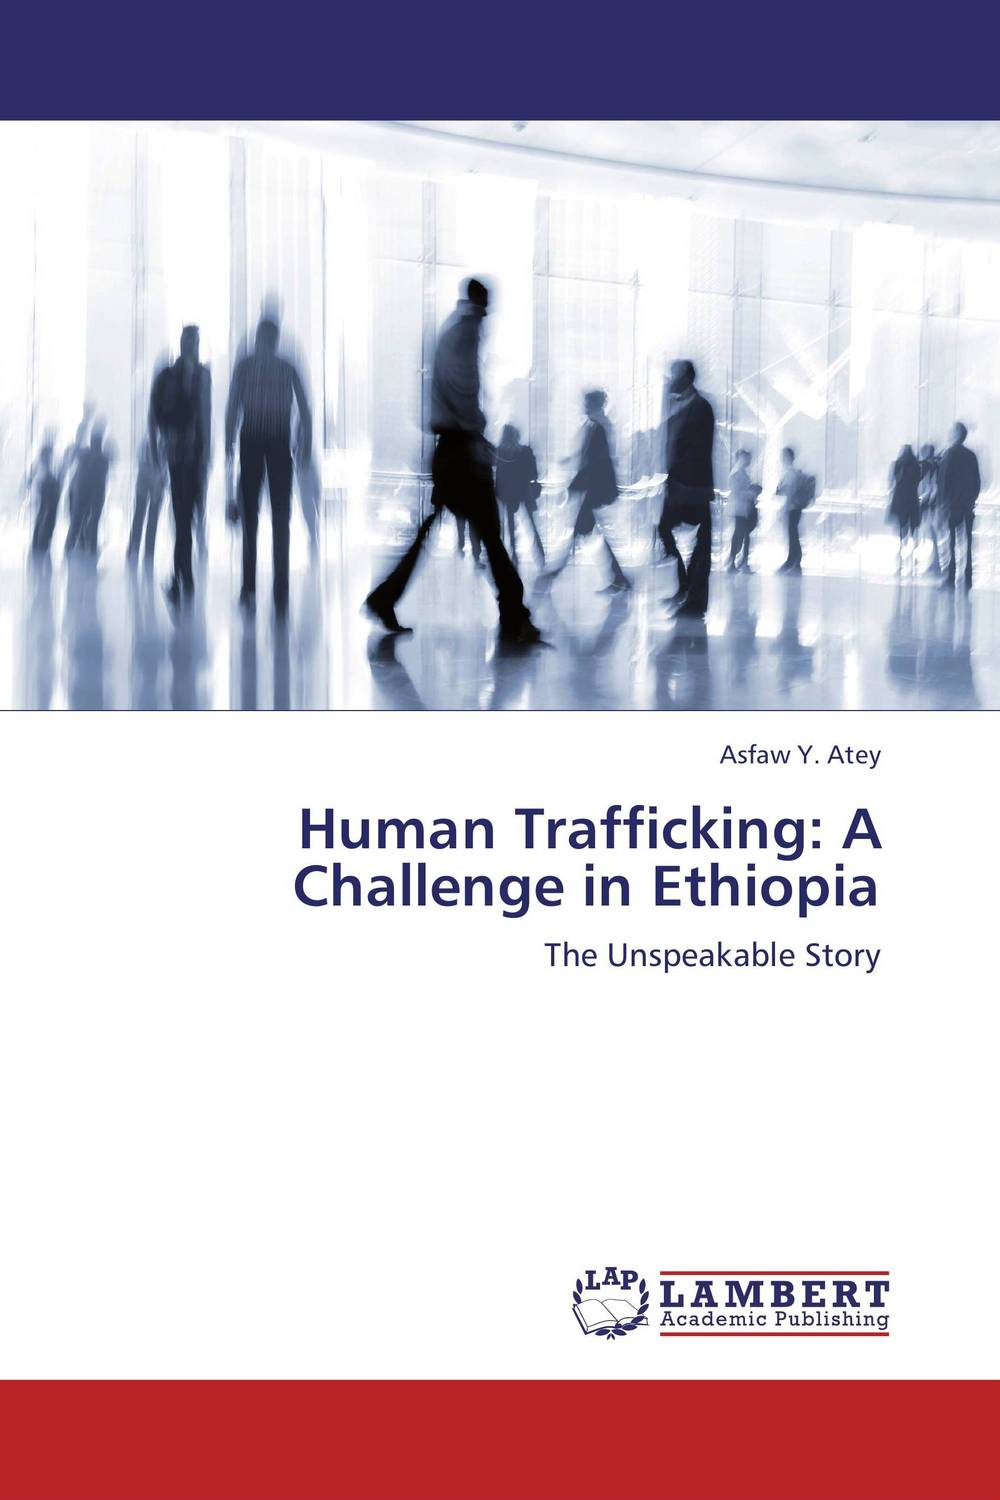 Human Trafficking: A Challenge in Ethiopia